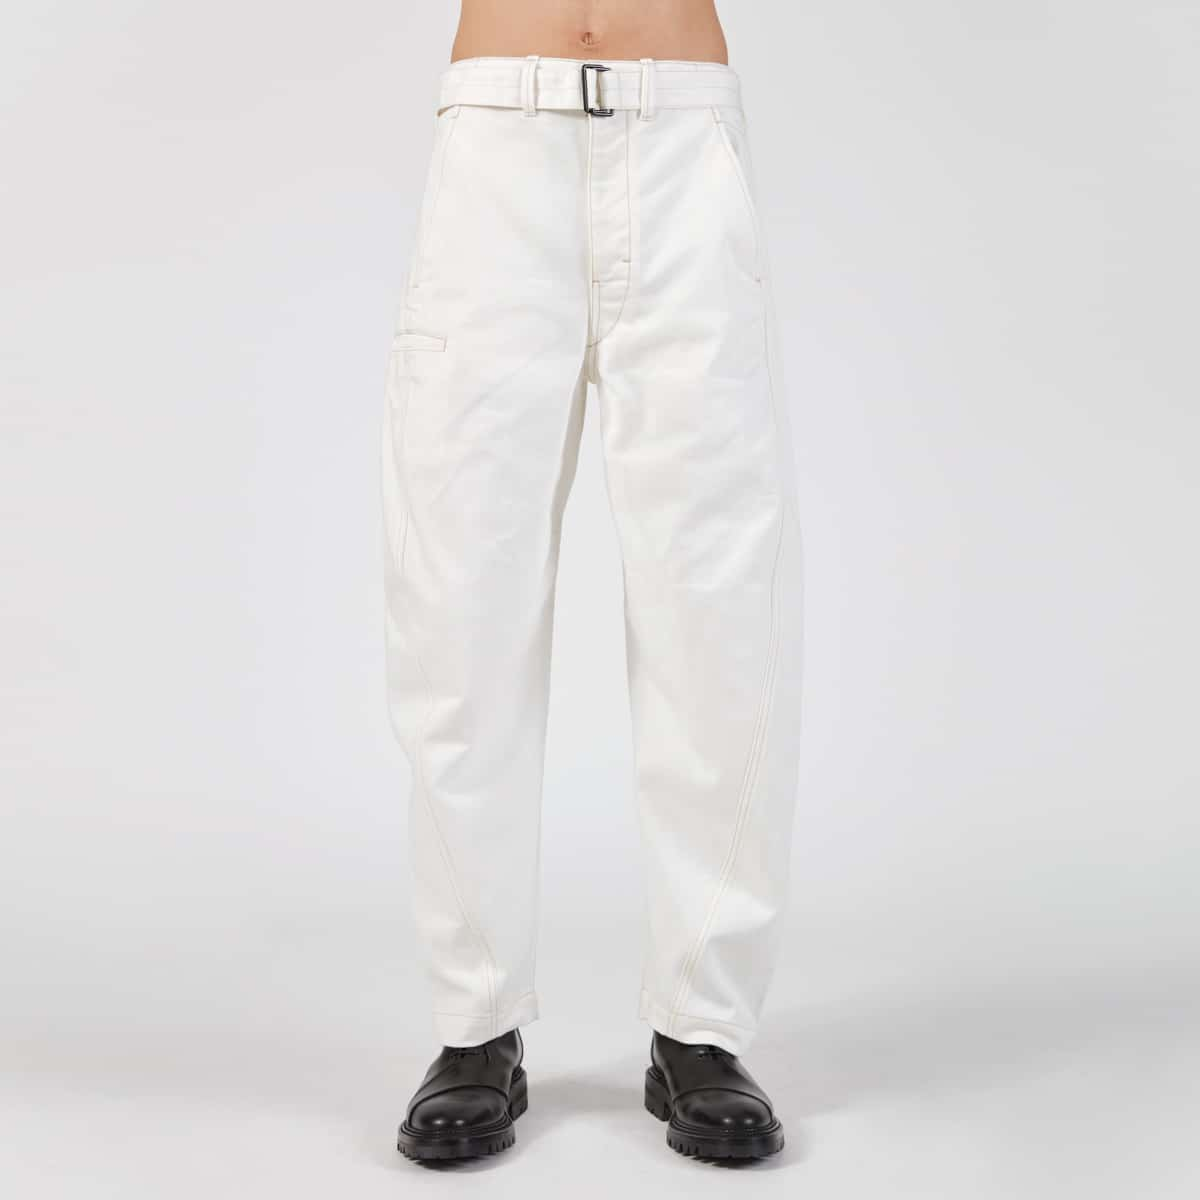 Lemaire Mens Twisted Pants